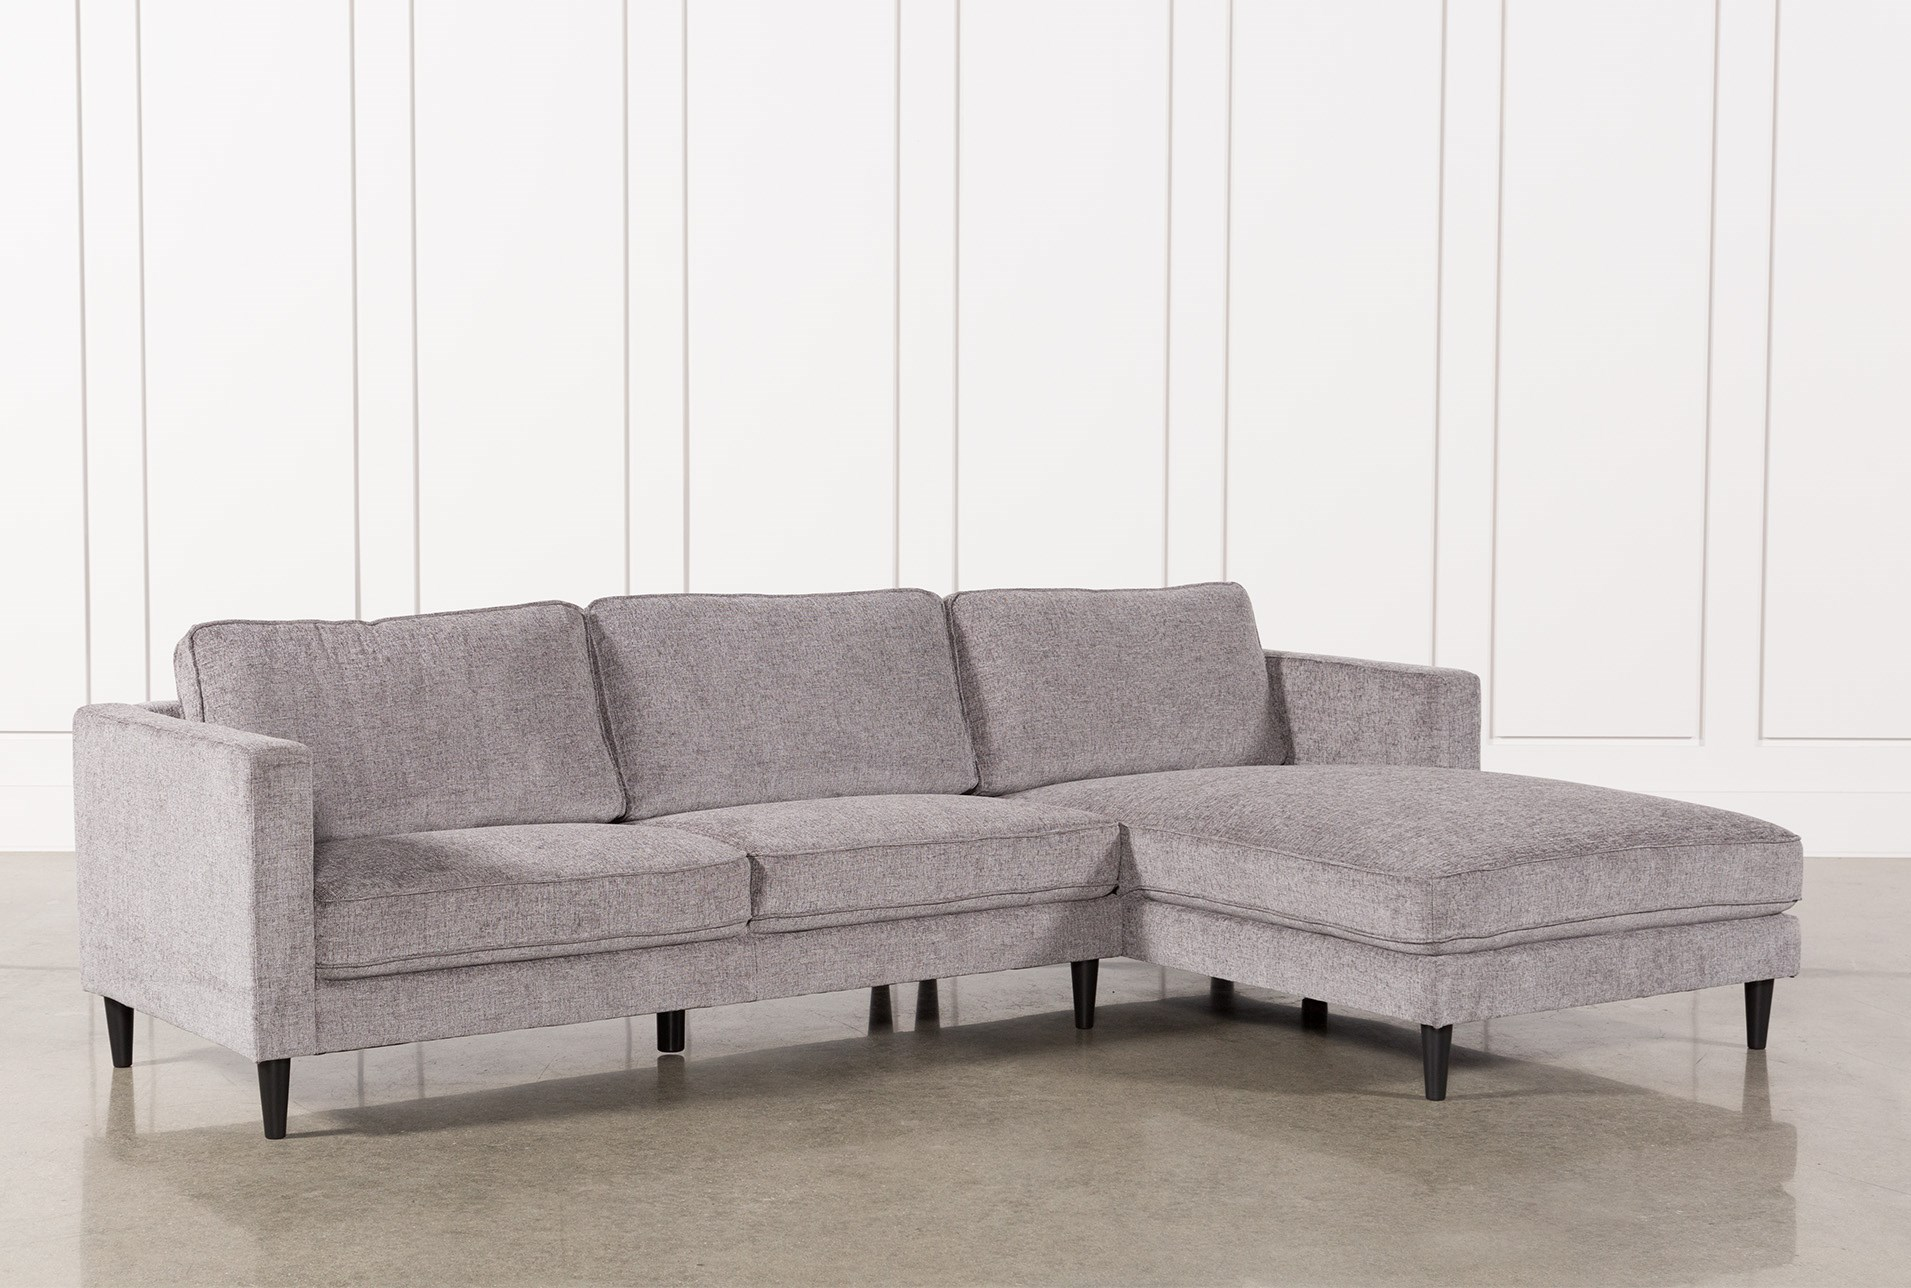 sofas sofa light interior living best livingroom gray grey couch inspirations small of cheap unique features full rooms room sectional ideas awesome size